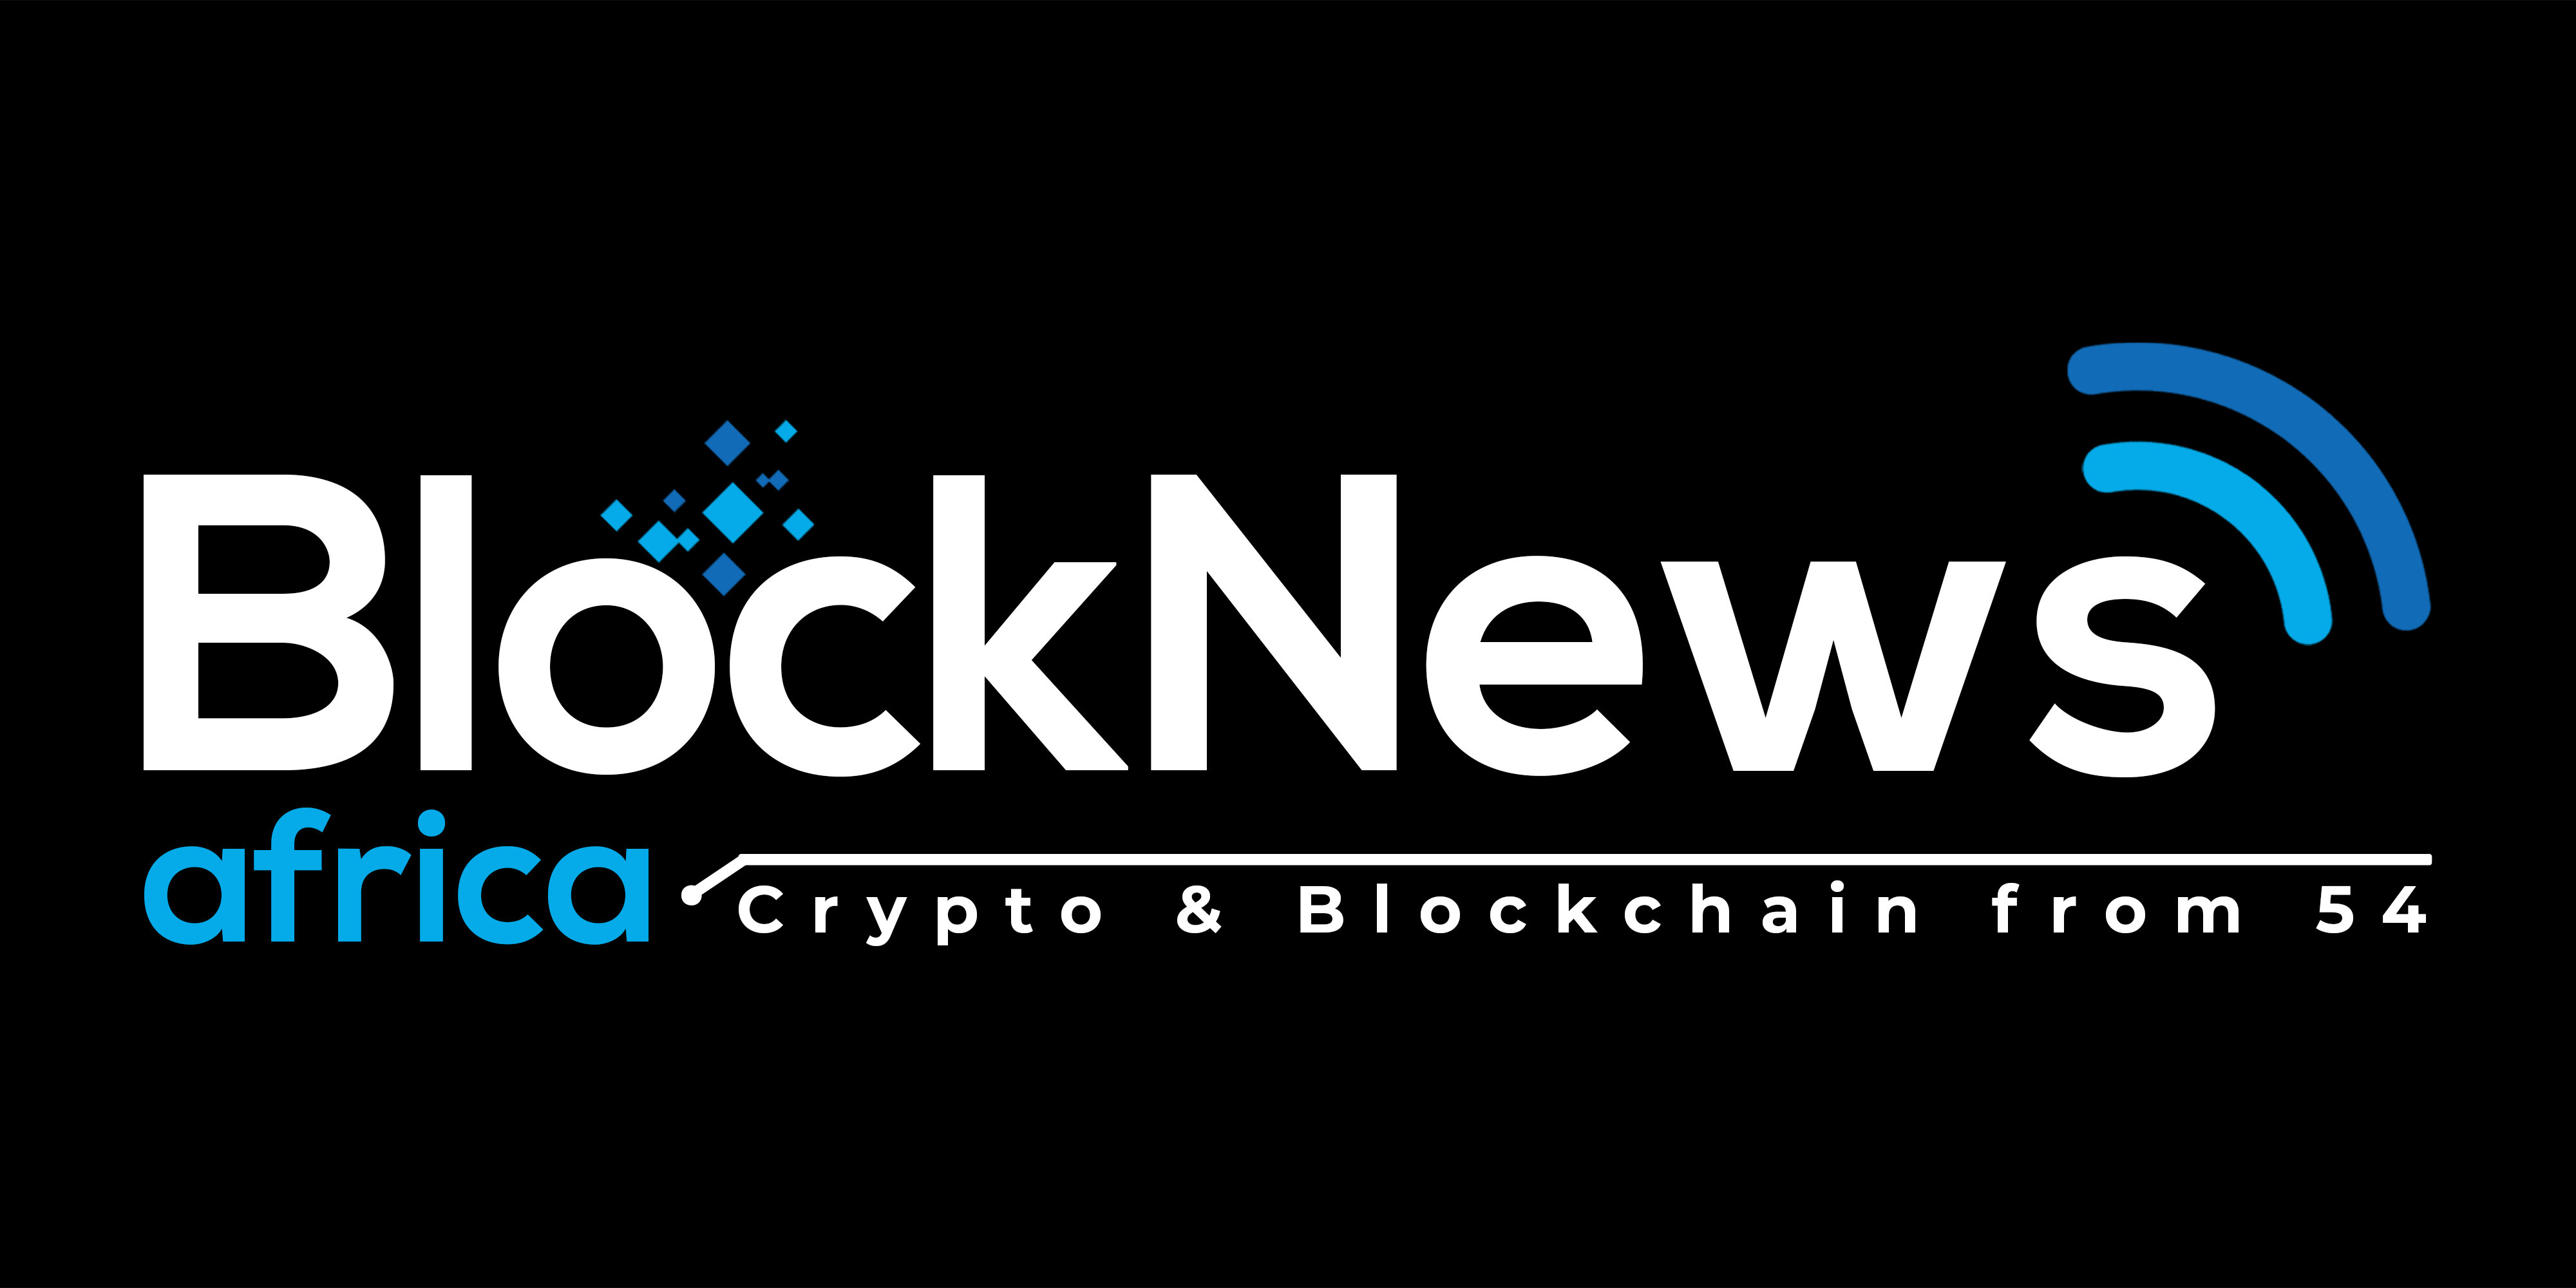 blocknewsafrica-logo-on-black-background